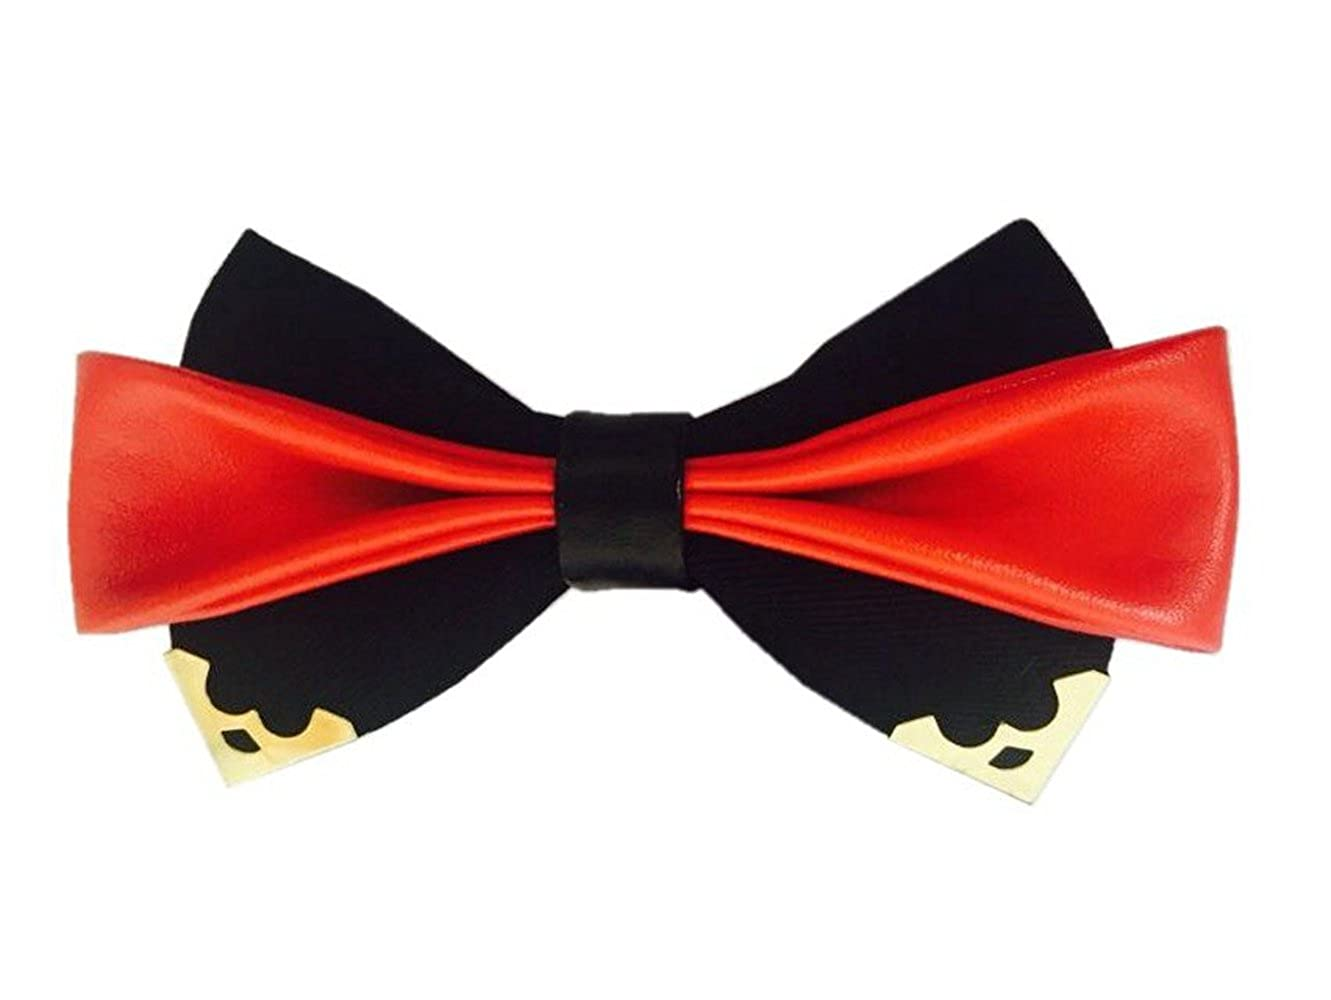 d24fdd76826f Hello Tie Men's Black Cotton and Leather Bow Tie With Gold Metal Edge  Pre-tied Bowtie at Amazon Men's Clothing store: